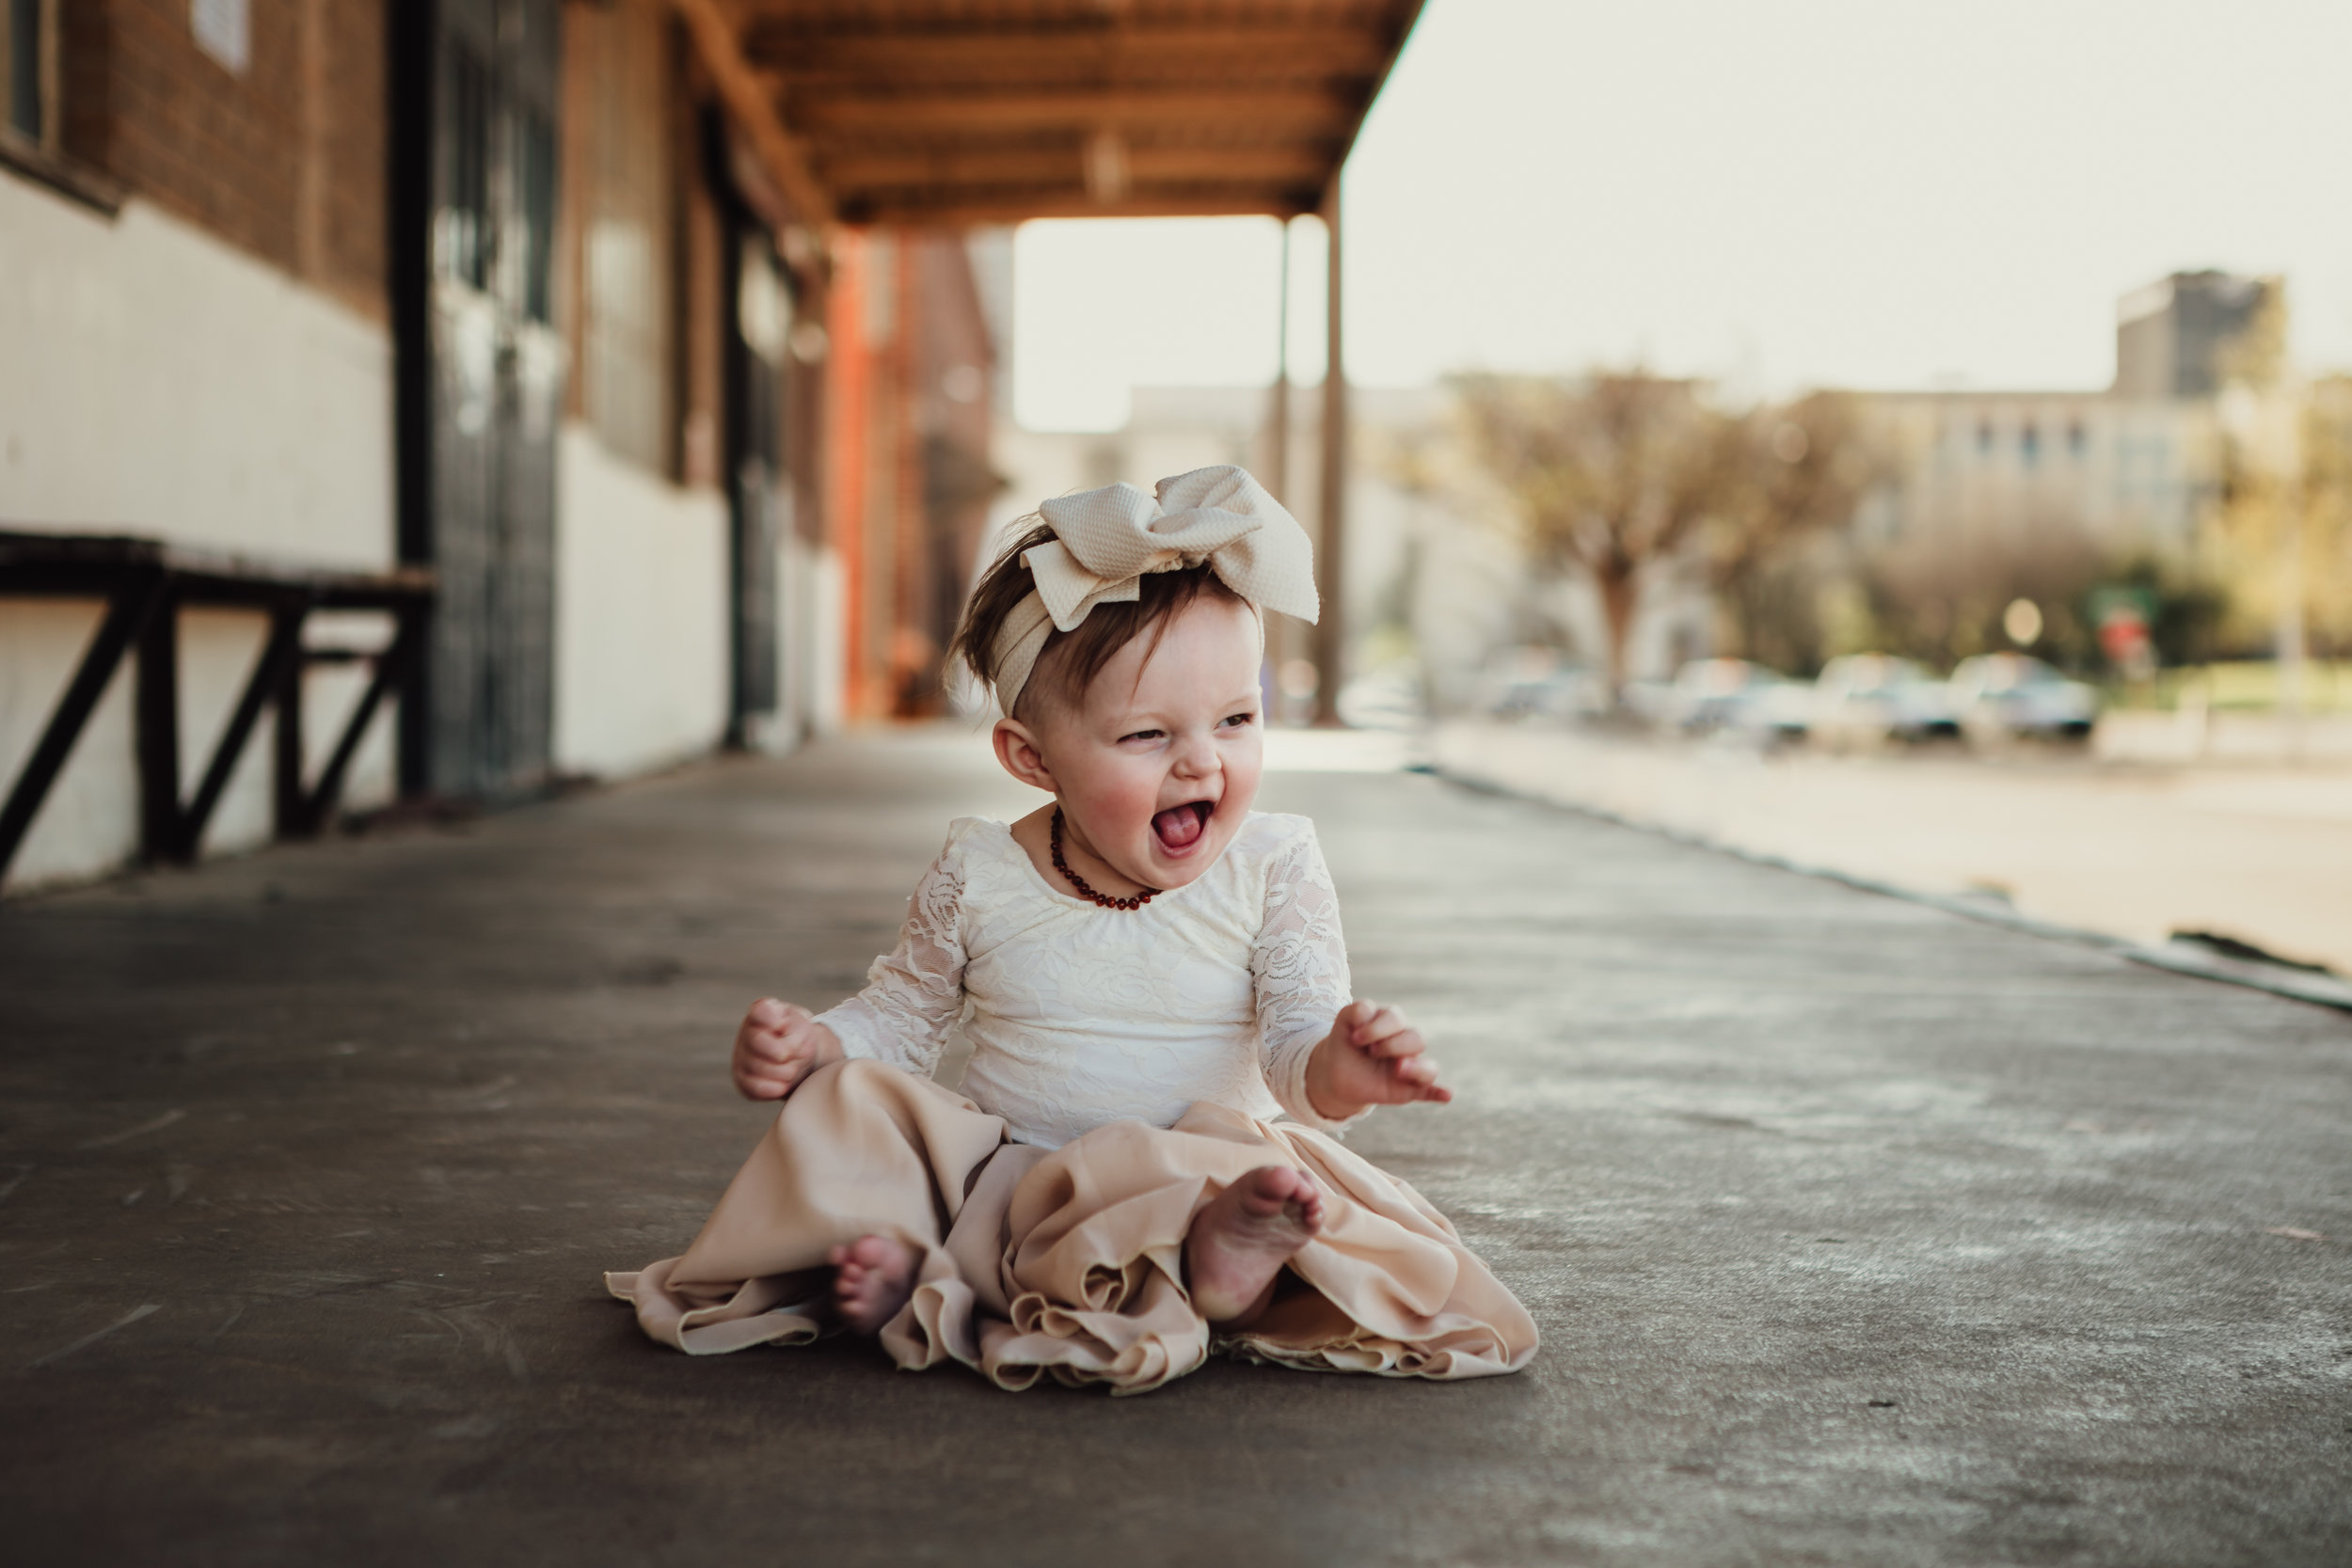 Laugh of a little one captured in neutral wardrobe and large bow #rubyred #familyphotos #downtown #hairstyle #personality #amarillotexas #familyphotographer #lifestylephotos #amarillophotographer #locationchoice #texasfamilyphotos #familyofthree